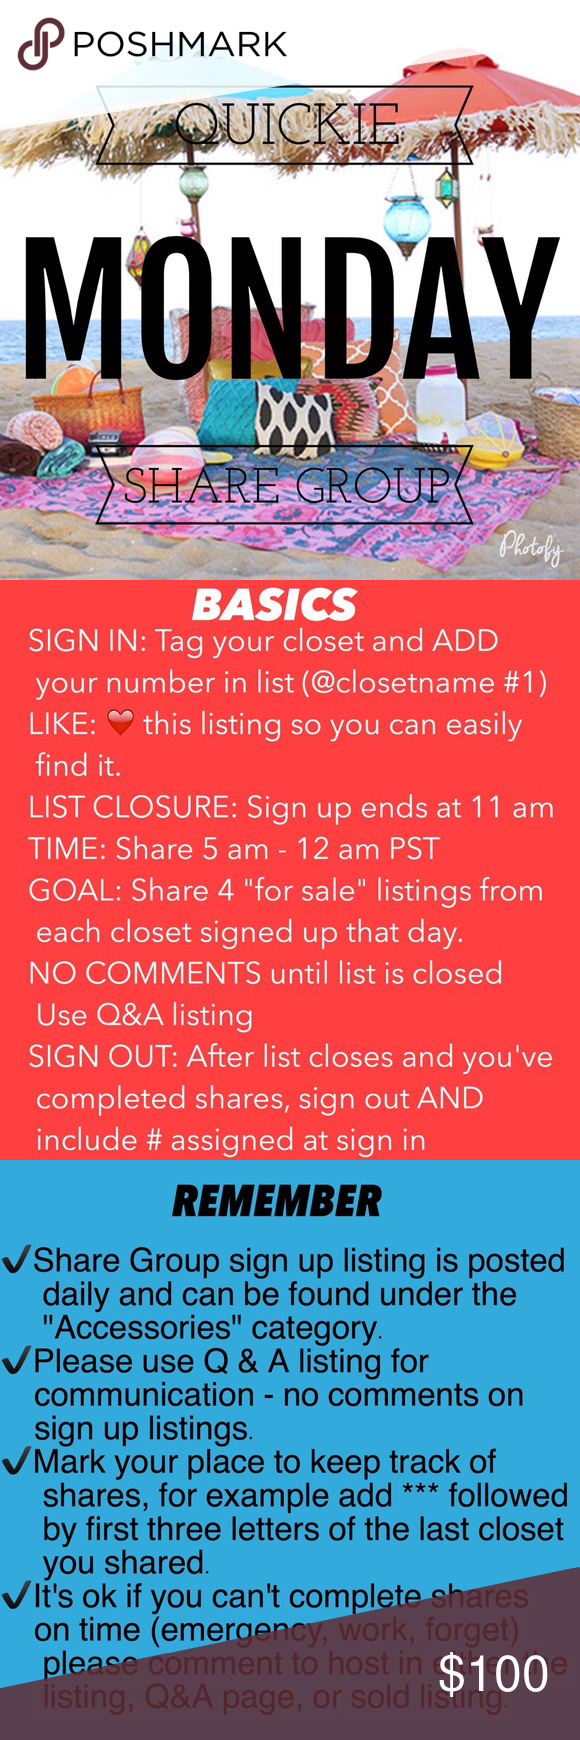 ⭕️OPEN⭕️SEPTEMBER 12✏️SIGN UP SHEET QUICKIE SG 🔆PC (Posh Compliant) closets ONLY!         🔆See guidelines above before signing up 🔆Have fun!  🔆Sharing is caring! 🔆Wishing you many sales! Accessories